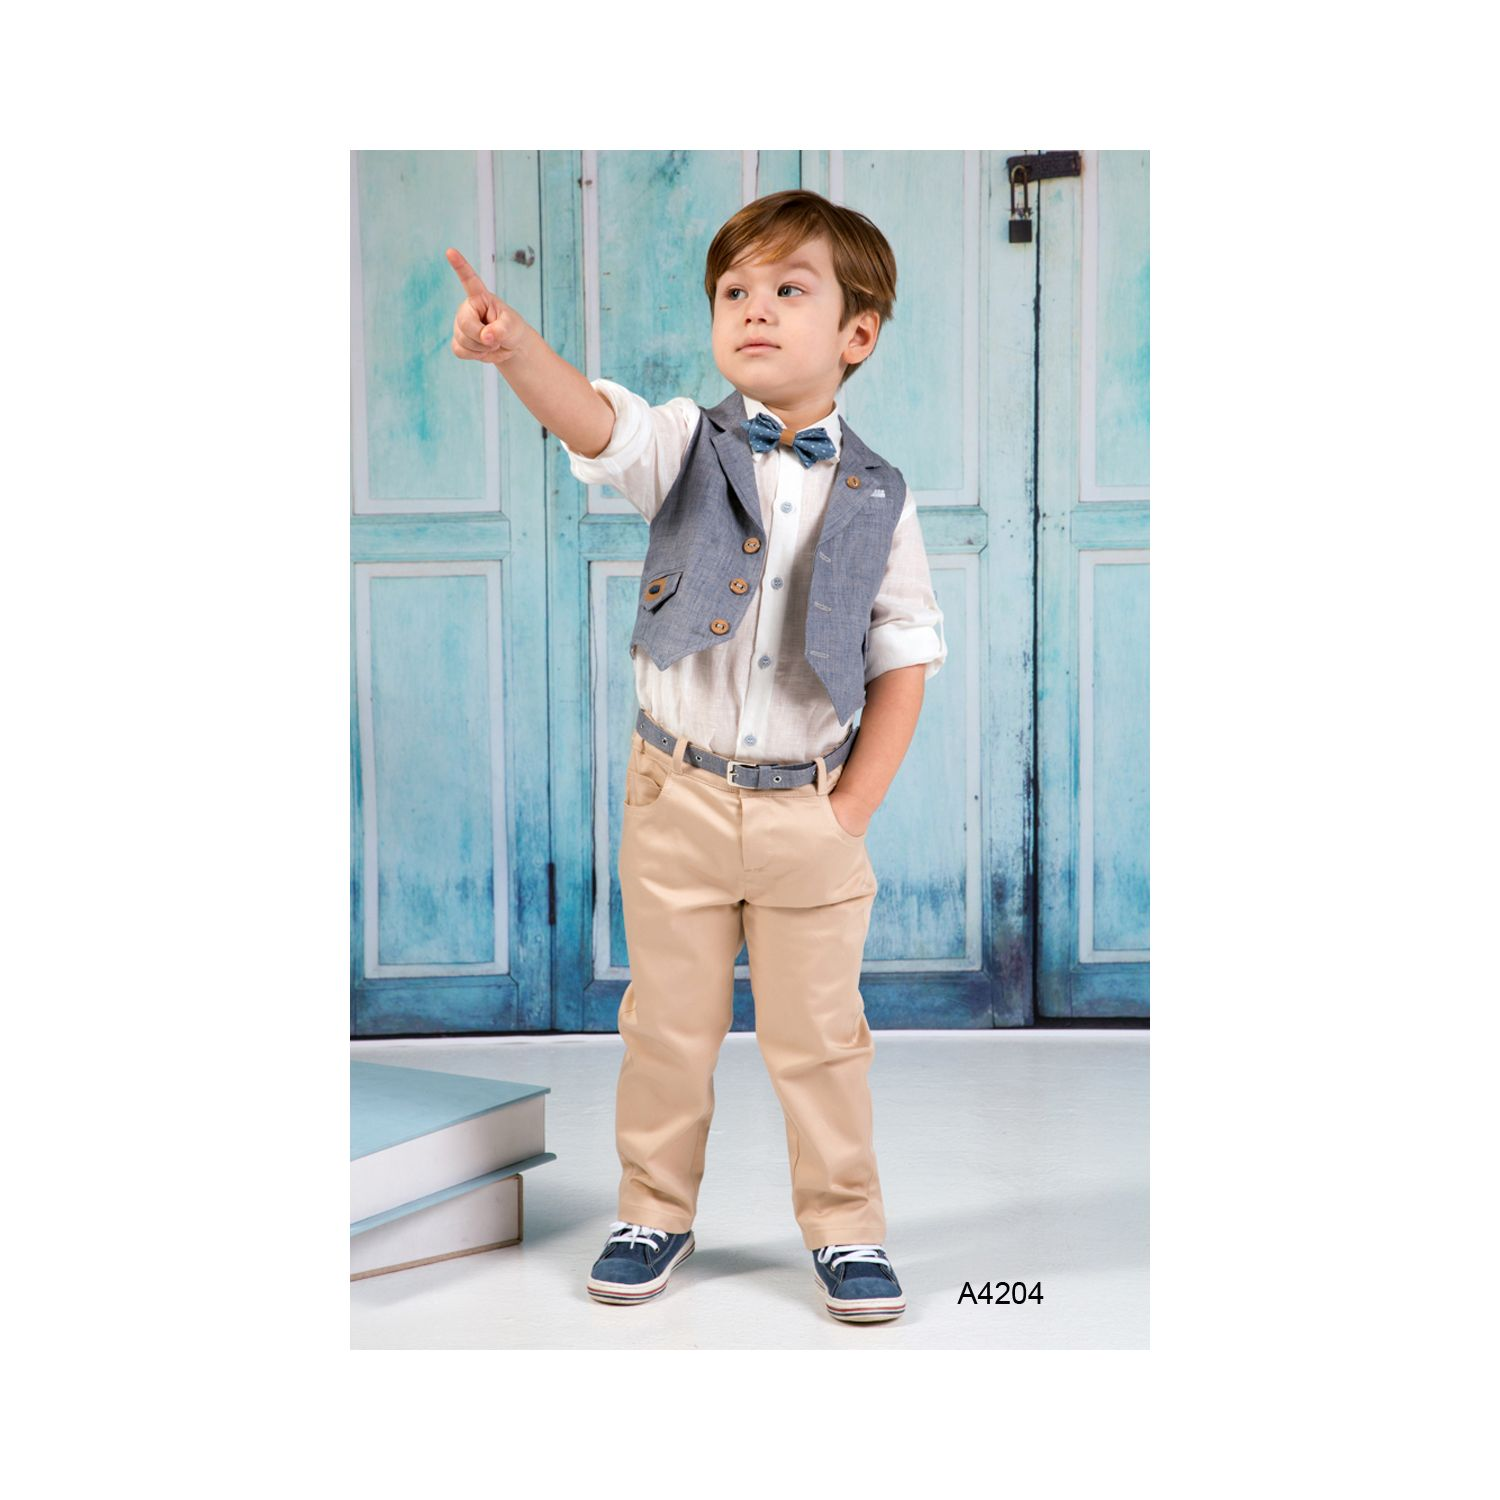 Baptism boy clothes A4204